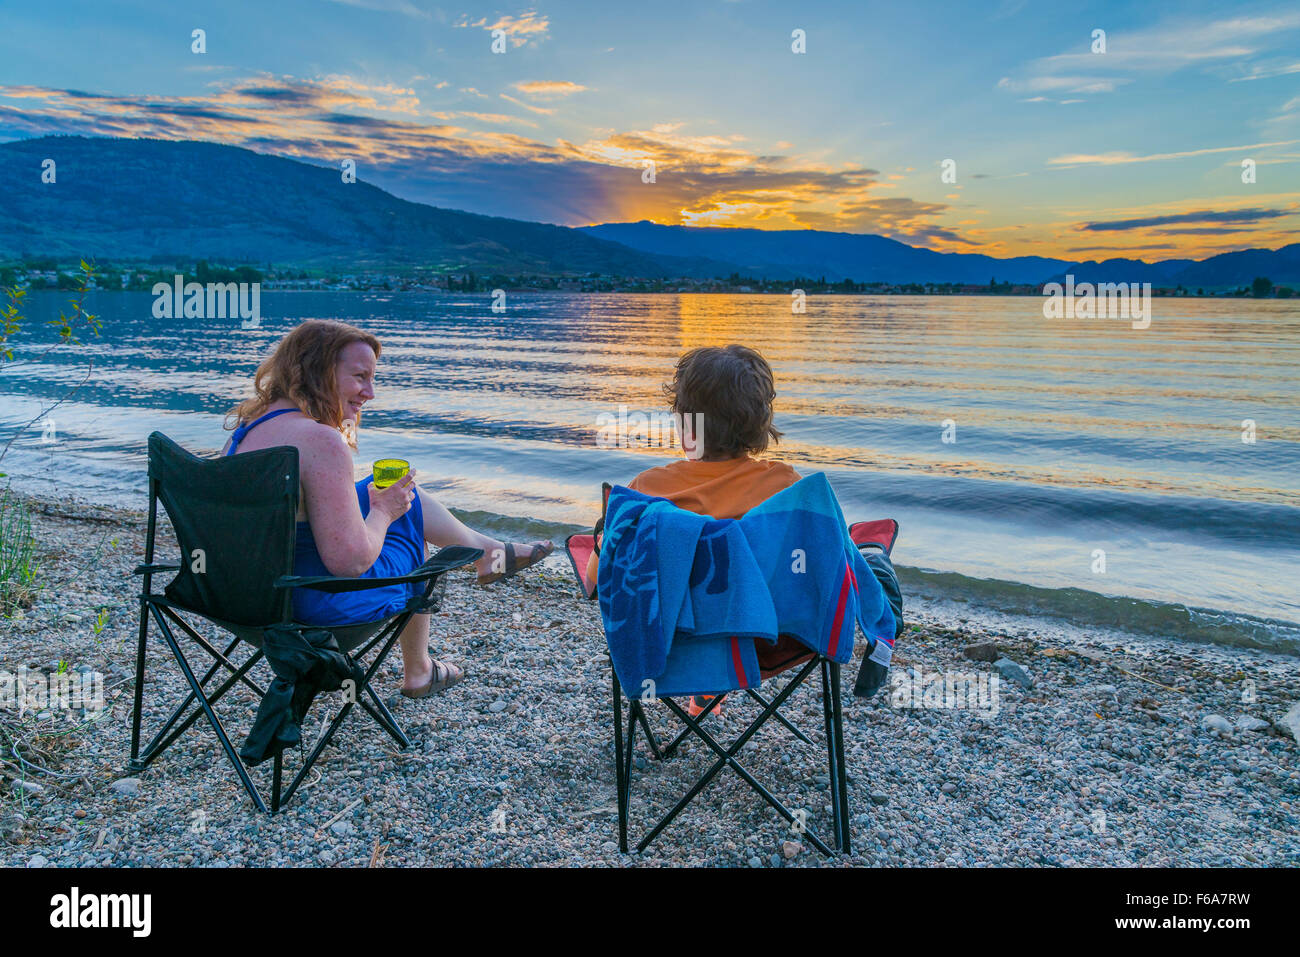 Mother and son at  at lakeshore campsite, Haynes Point Provincial Park, Osoyoos, British Columbia, Canada - Stock Image